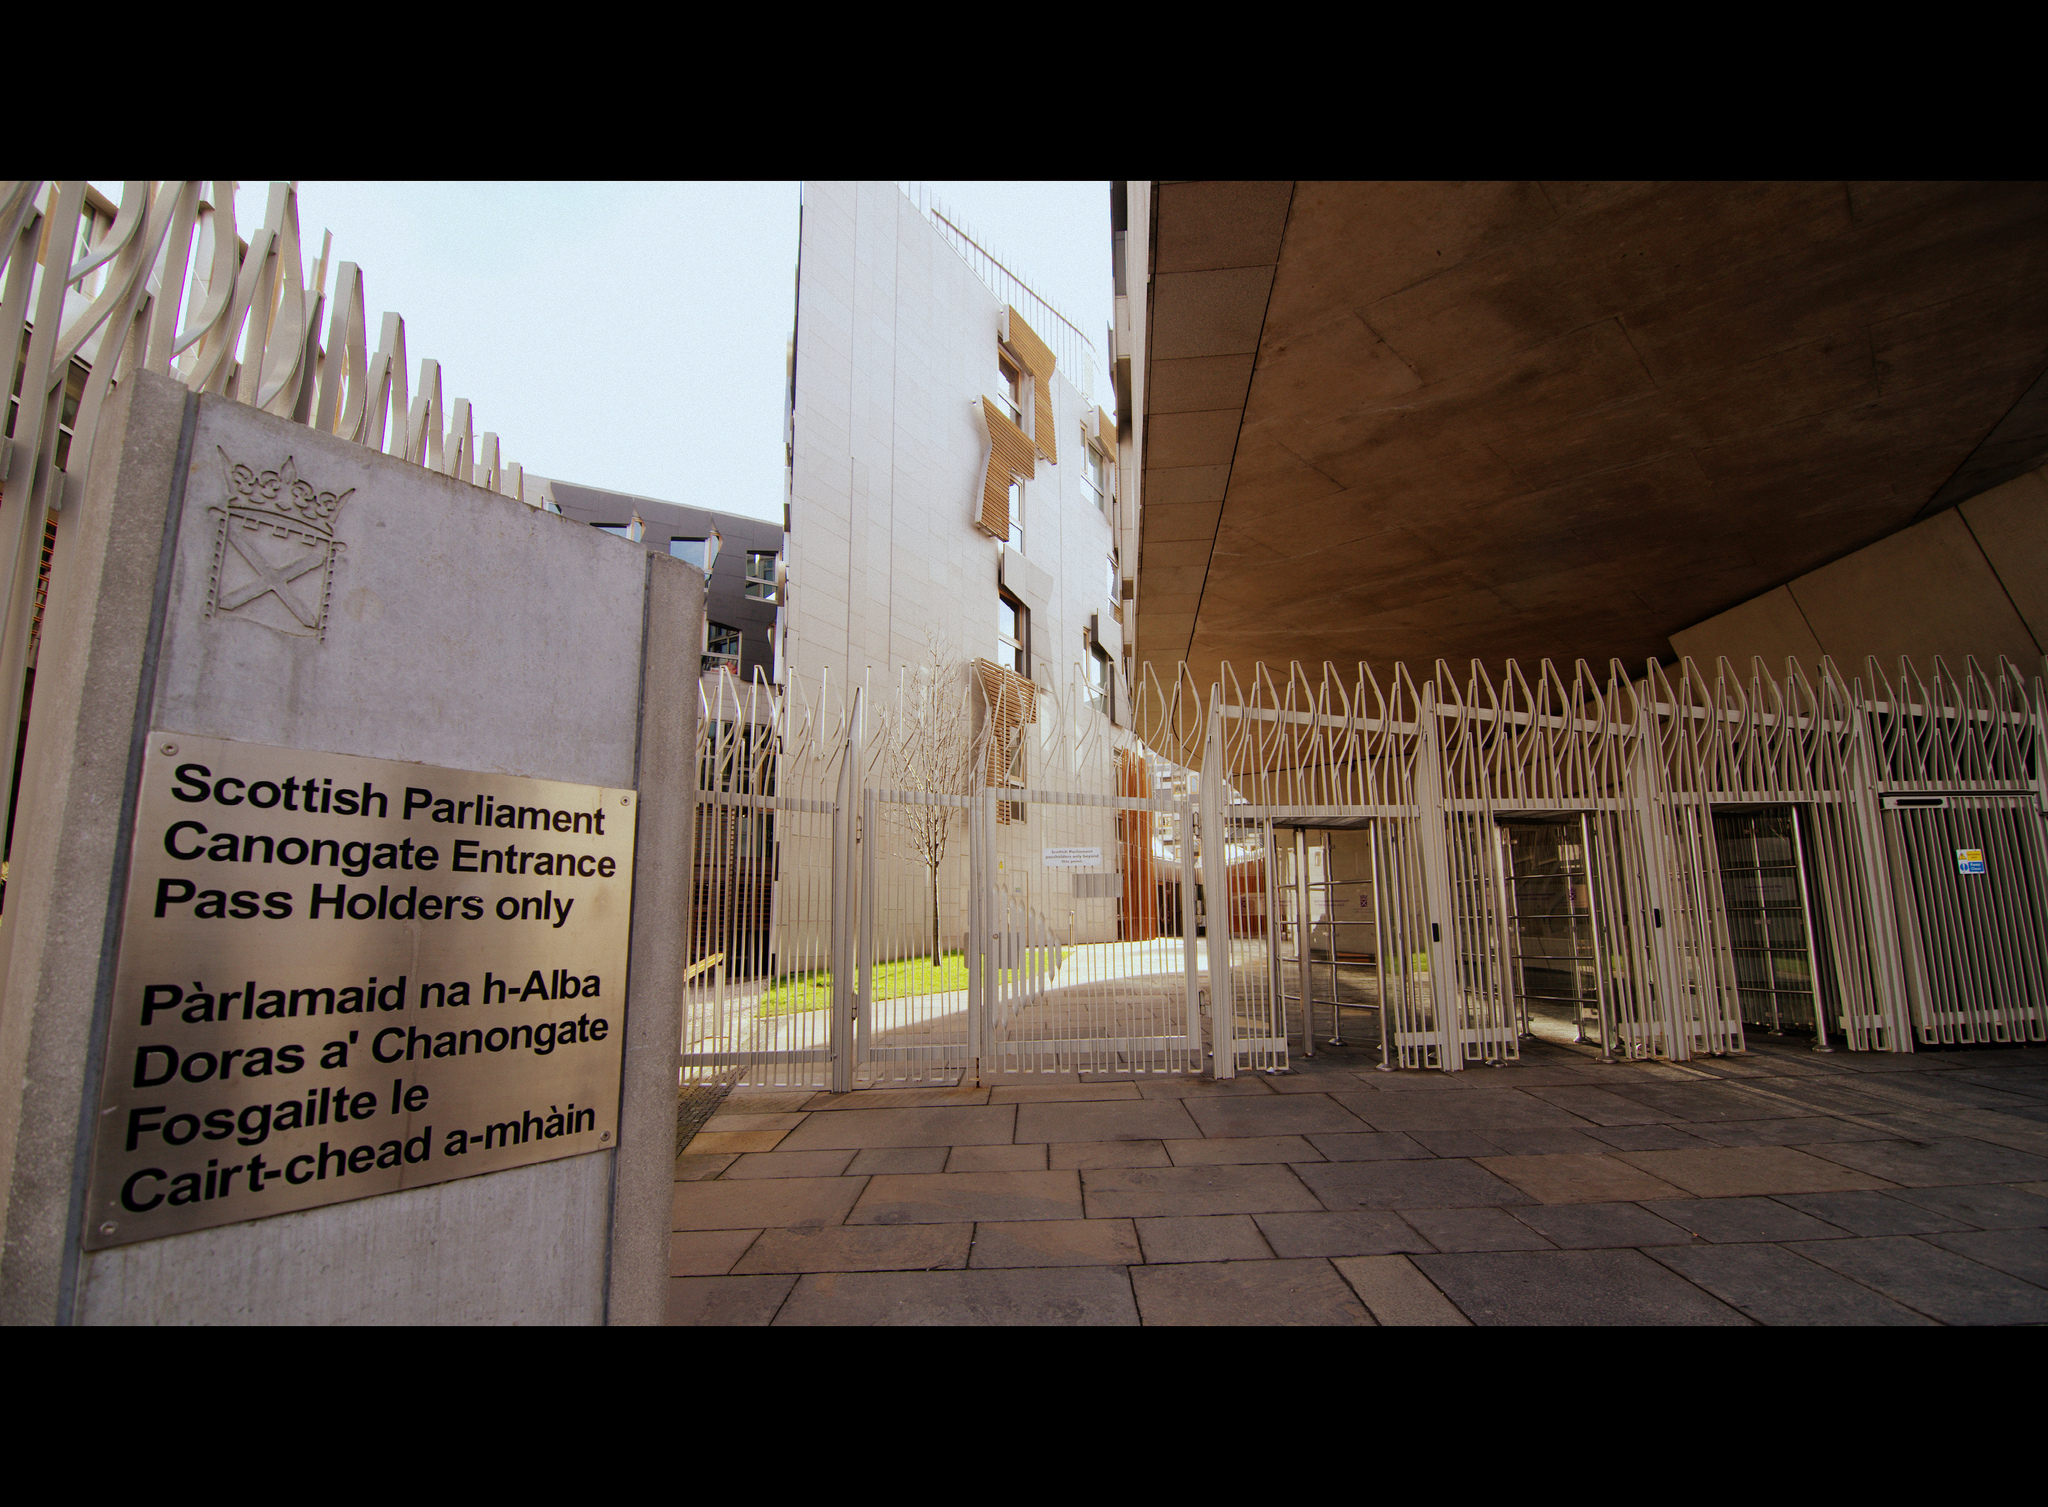 Scottish Parliament by Ryan Knight CC BY-NC 2.0